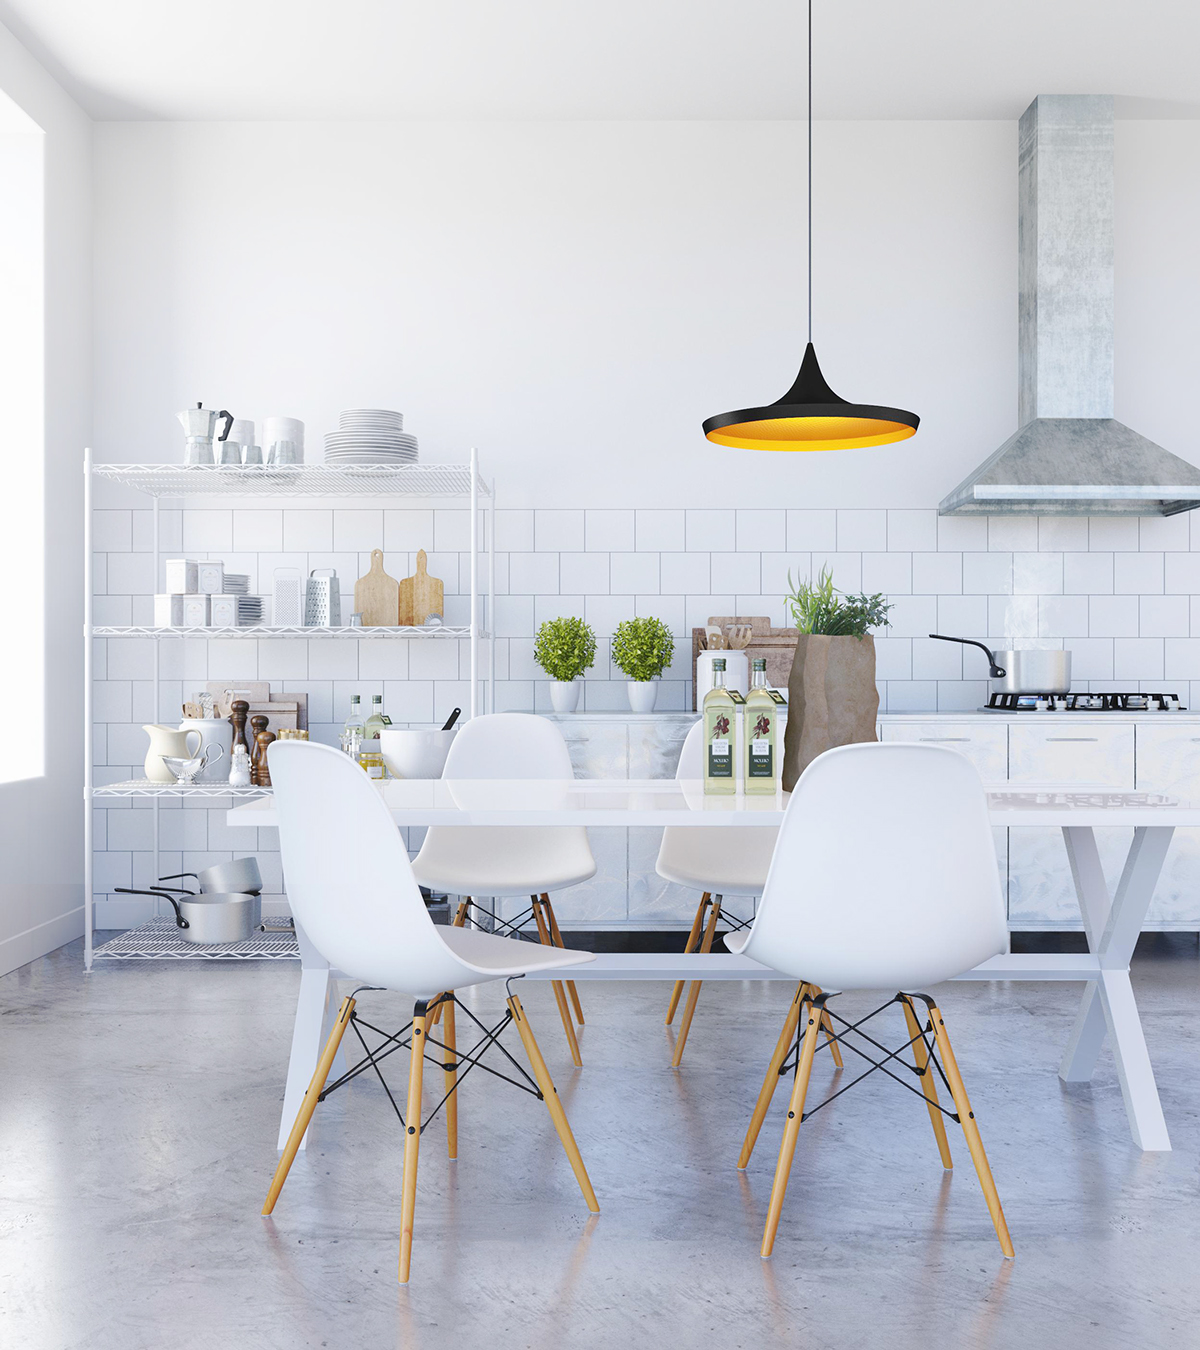 Kitchen Dining Designs Inspiration And Ideas: Scandinavian Dining Room Design: Ideas & Inspiration